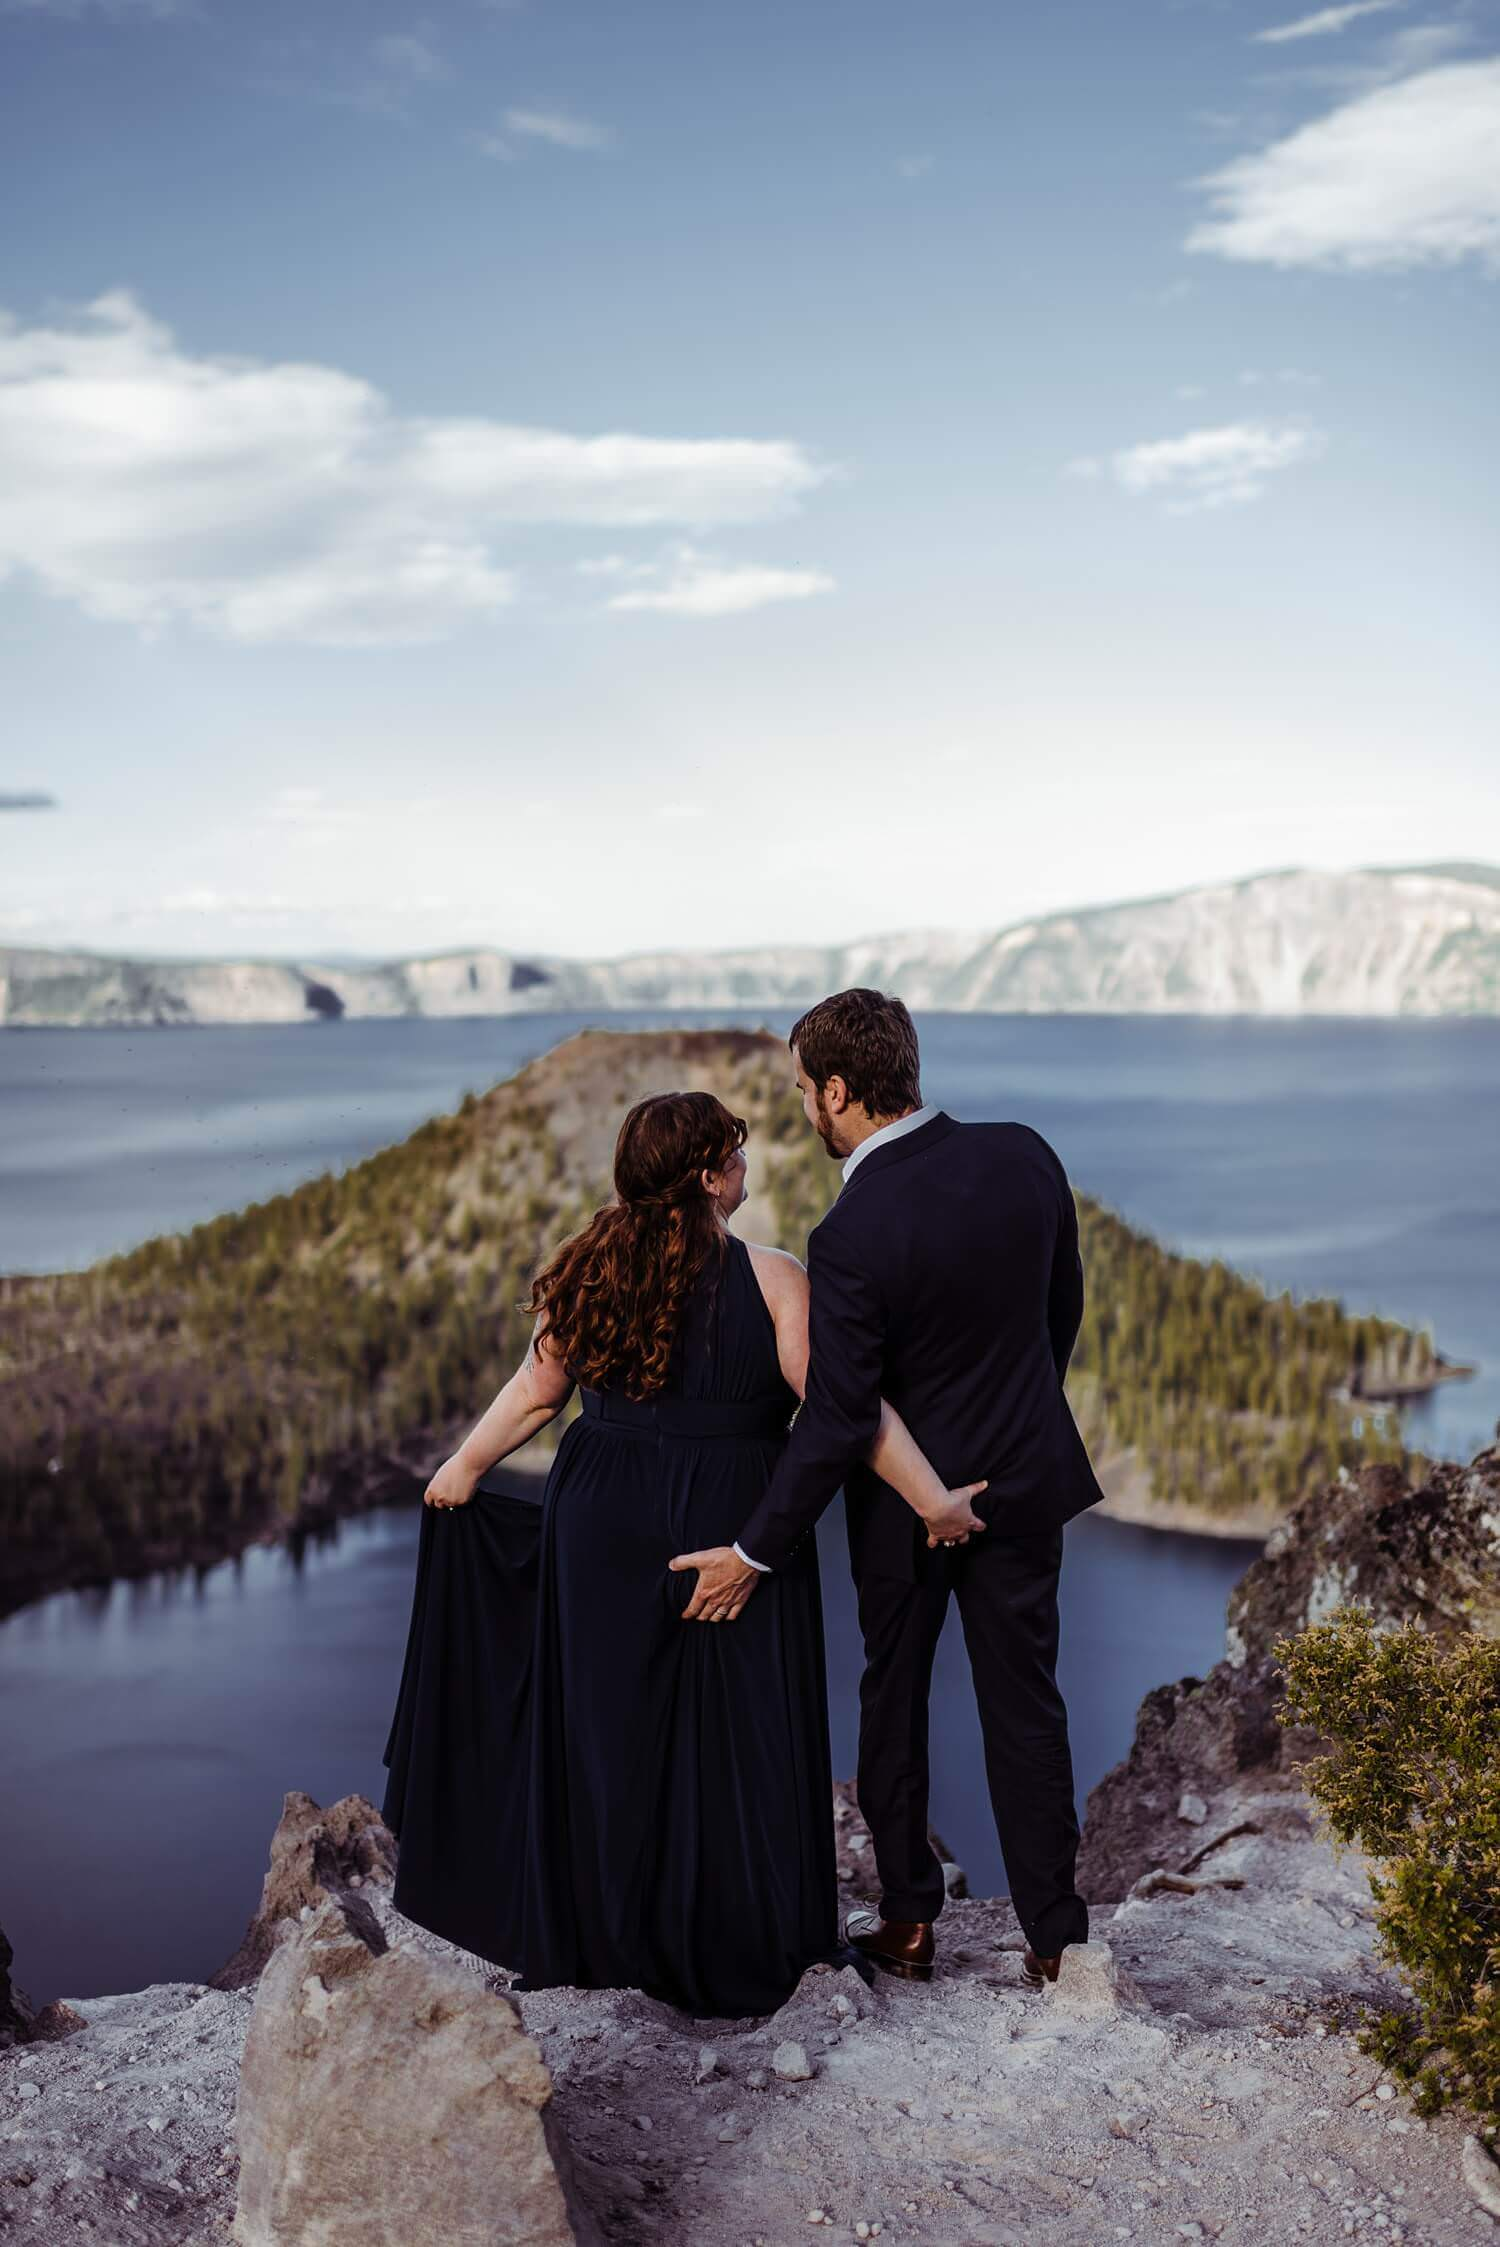 Crater Lake,adventure elopement photographer,adventure photographer,adventure session,elope,elopement,intimate wedding,jesse butler,kim butler,national park,oregon,pacific northwest,sam starns,vow renewal,